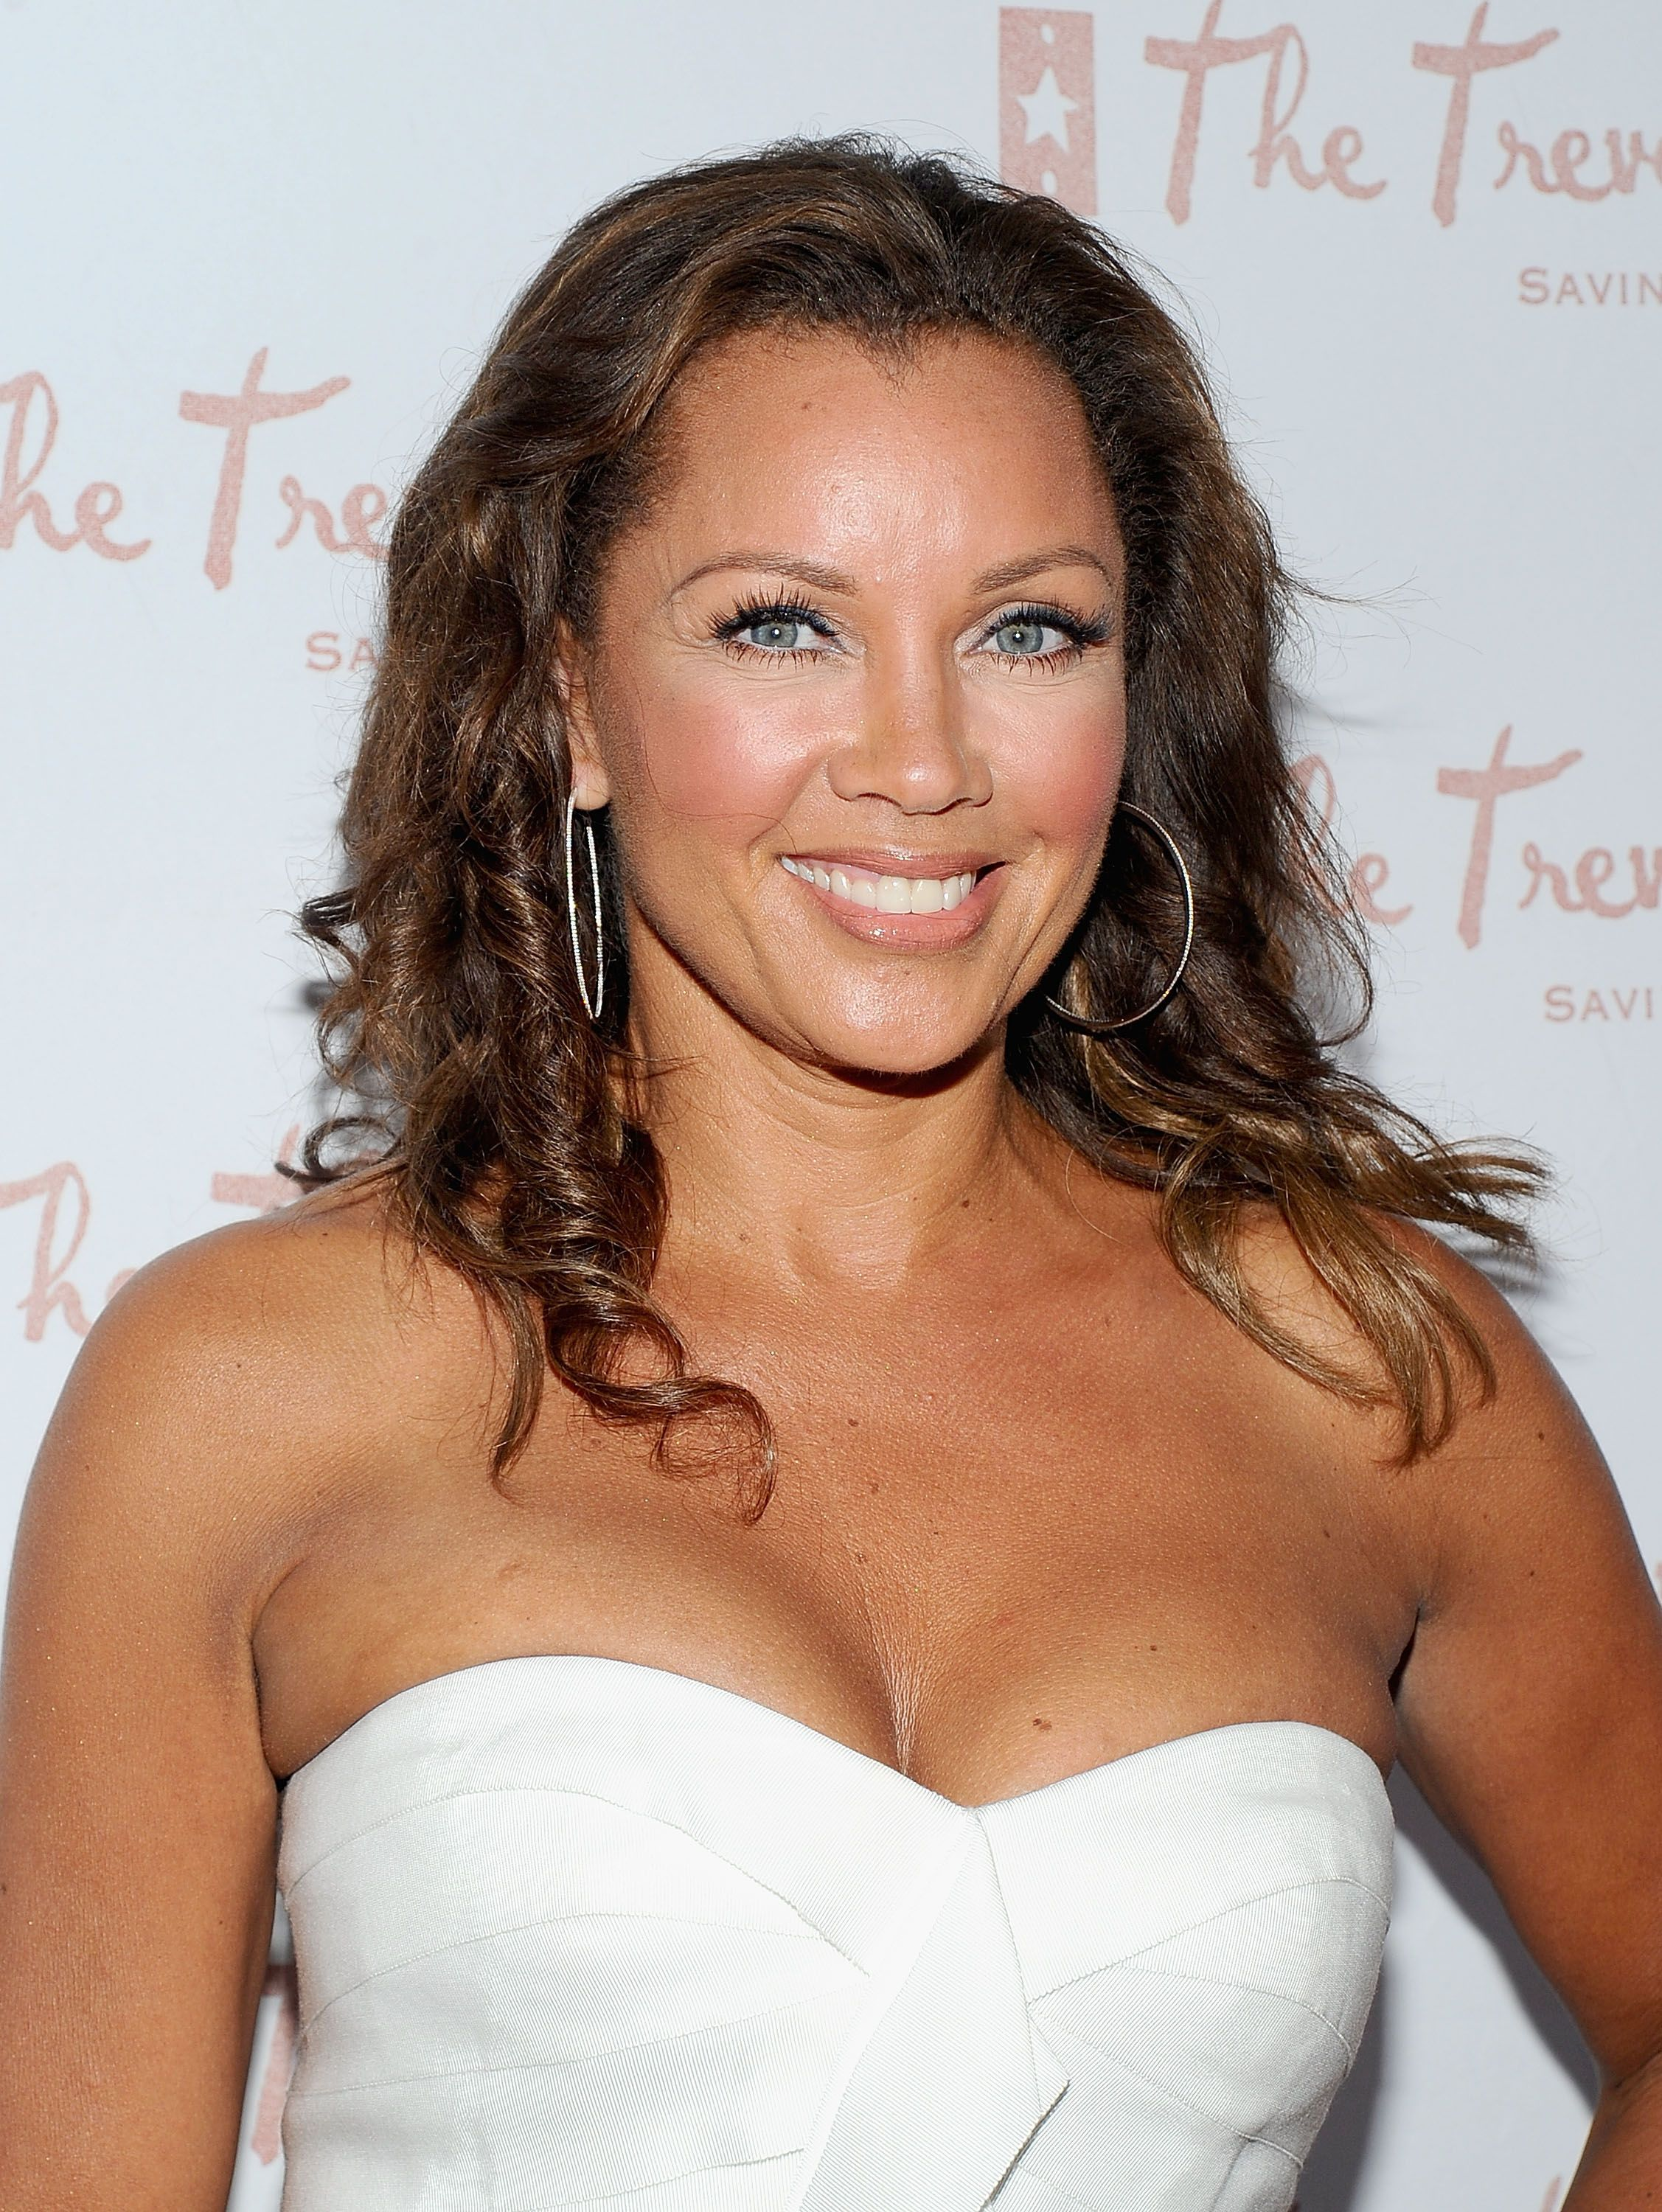 Vanessa Williams | VANESSA WILLIAMS | Pinterest | Vanessa ... Vanessa Williams